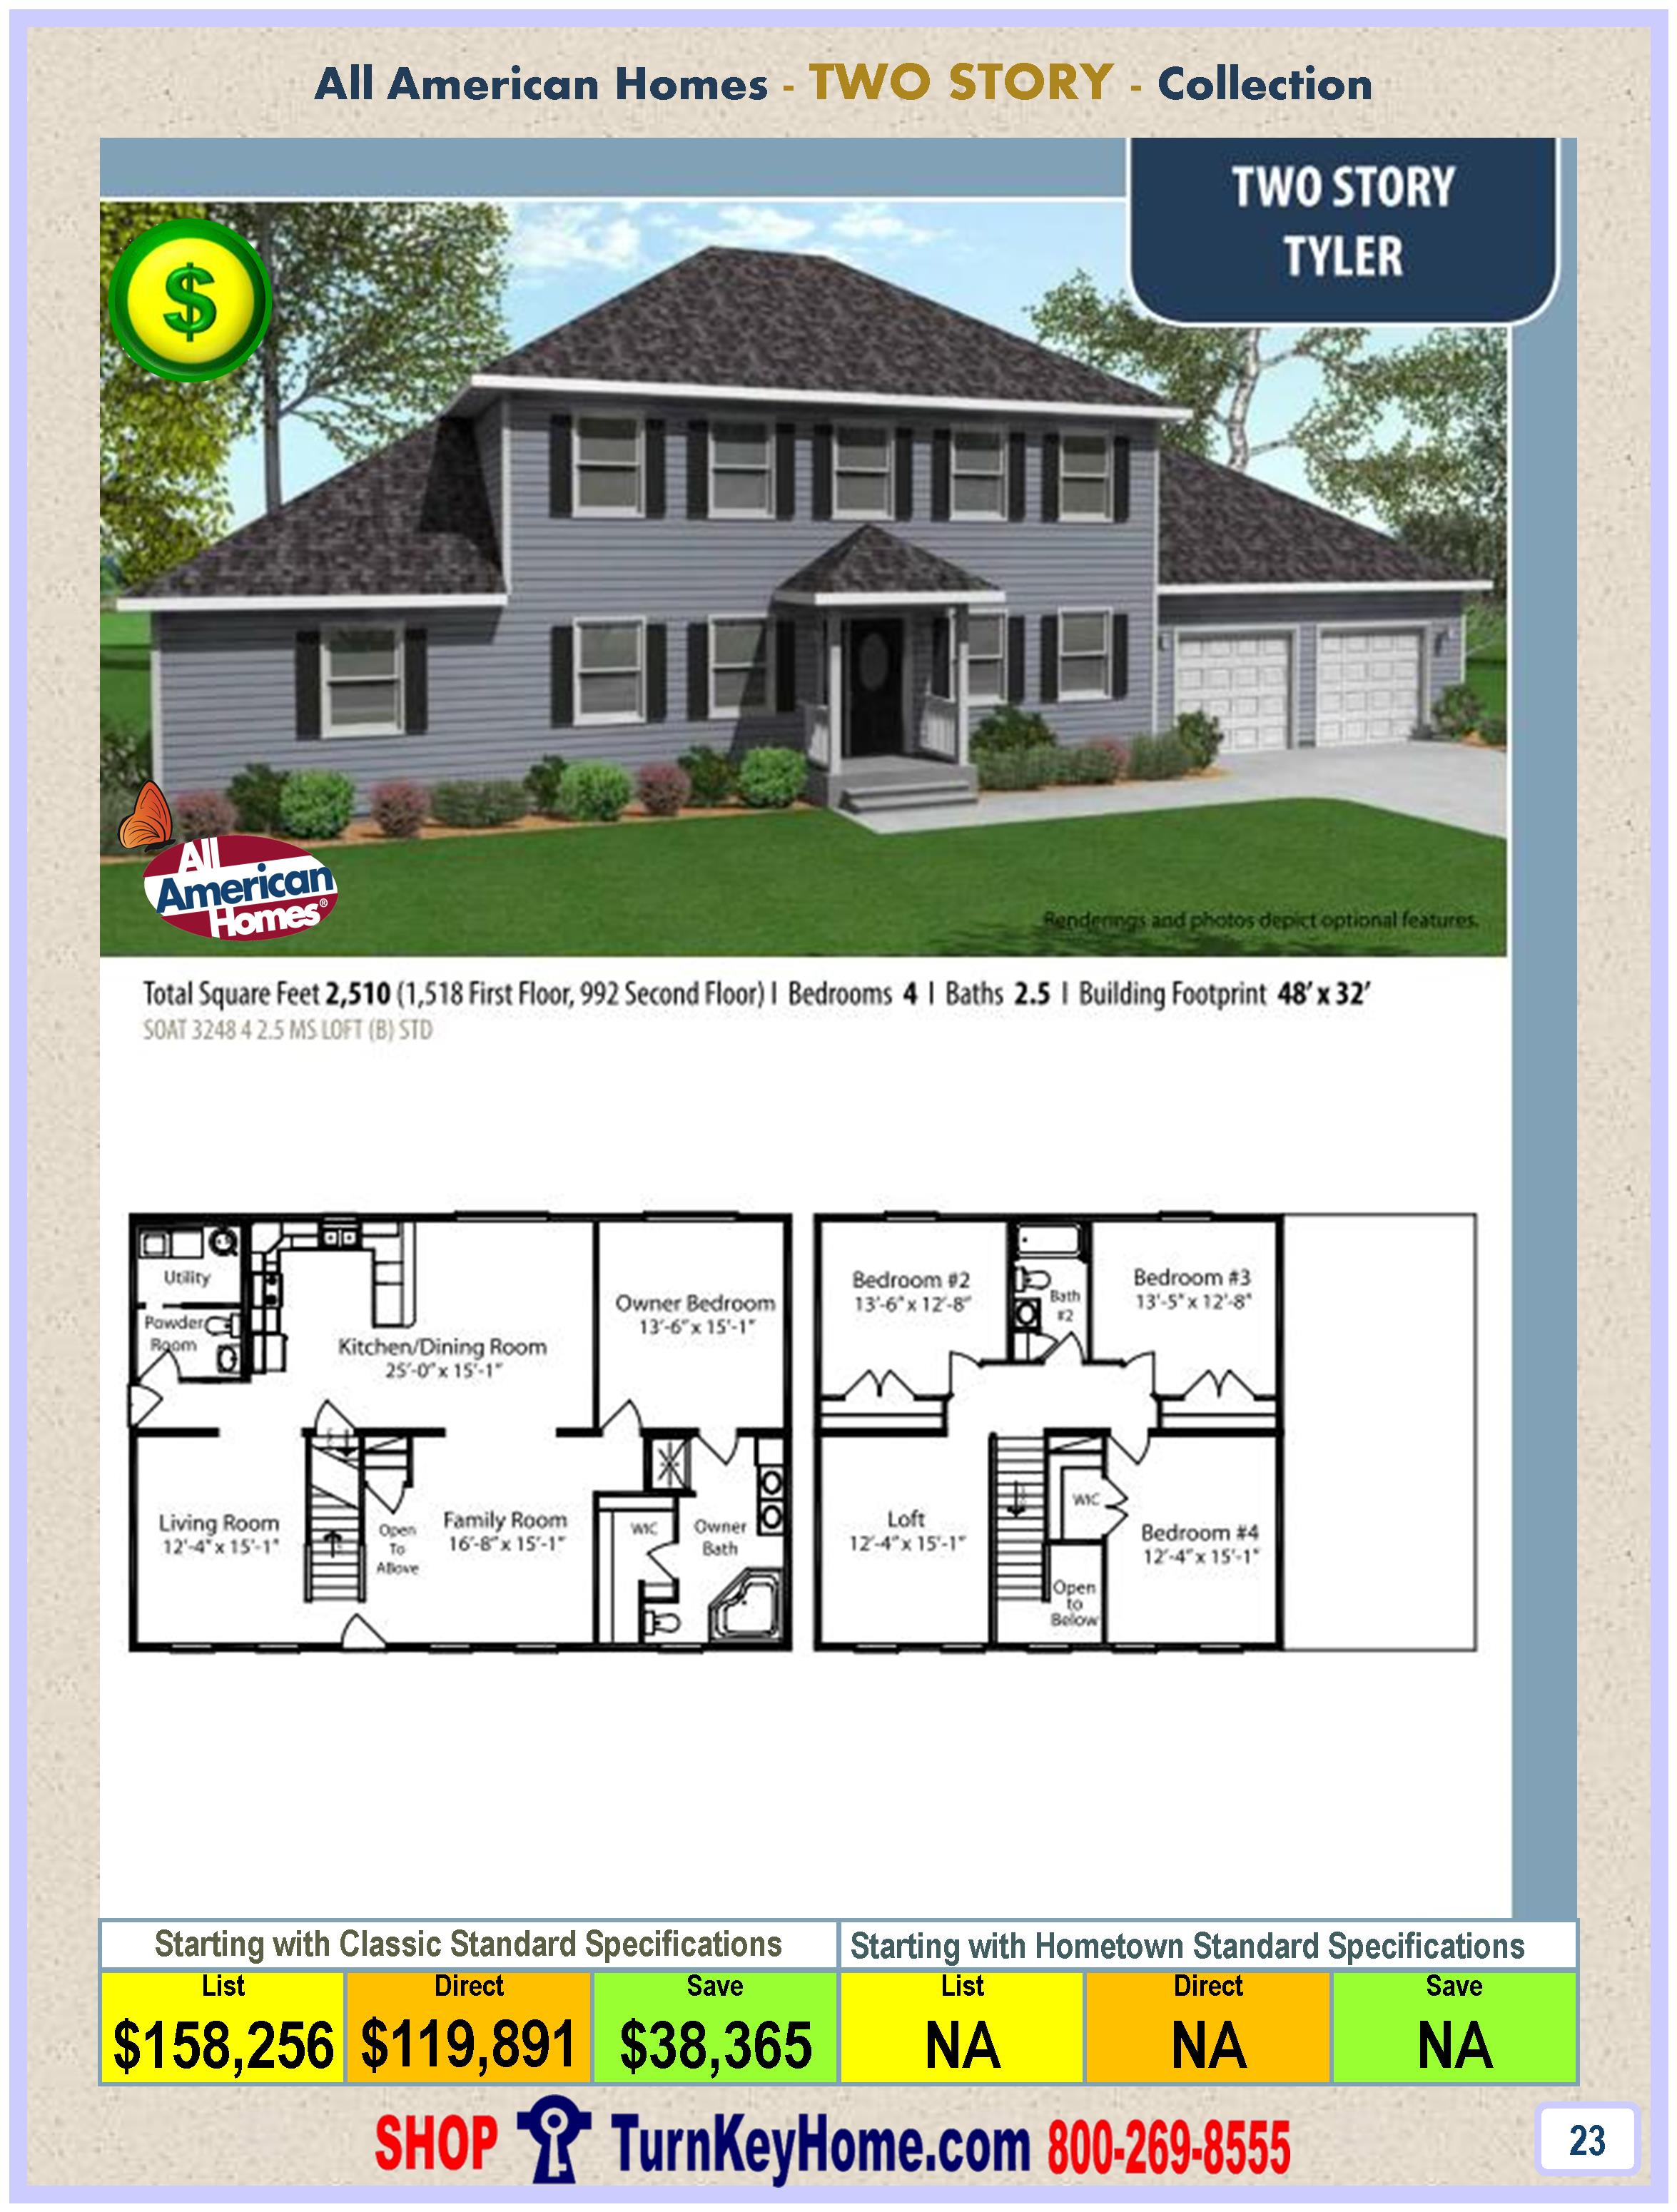 Modular.Home.All.American.Homes.Two.Story.TYLER.Plan.Price.P23.1115